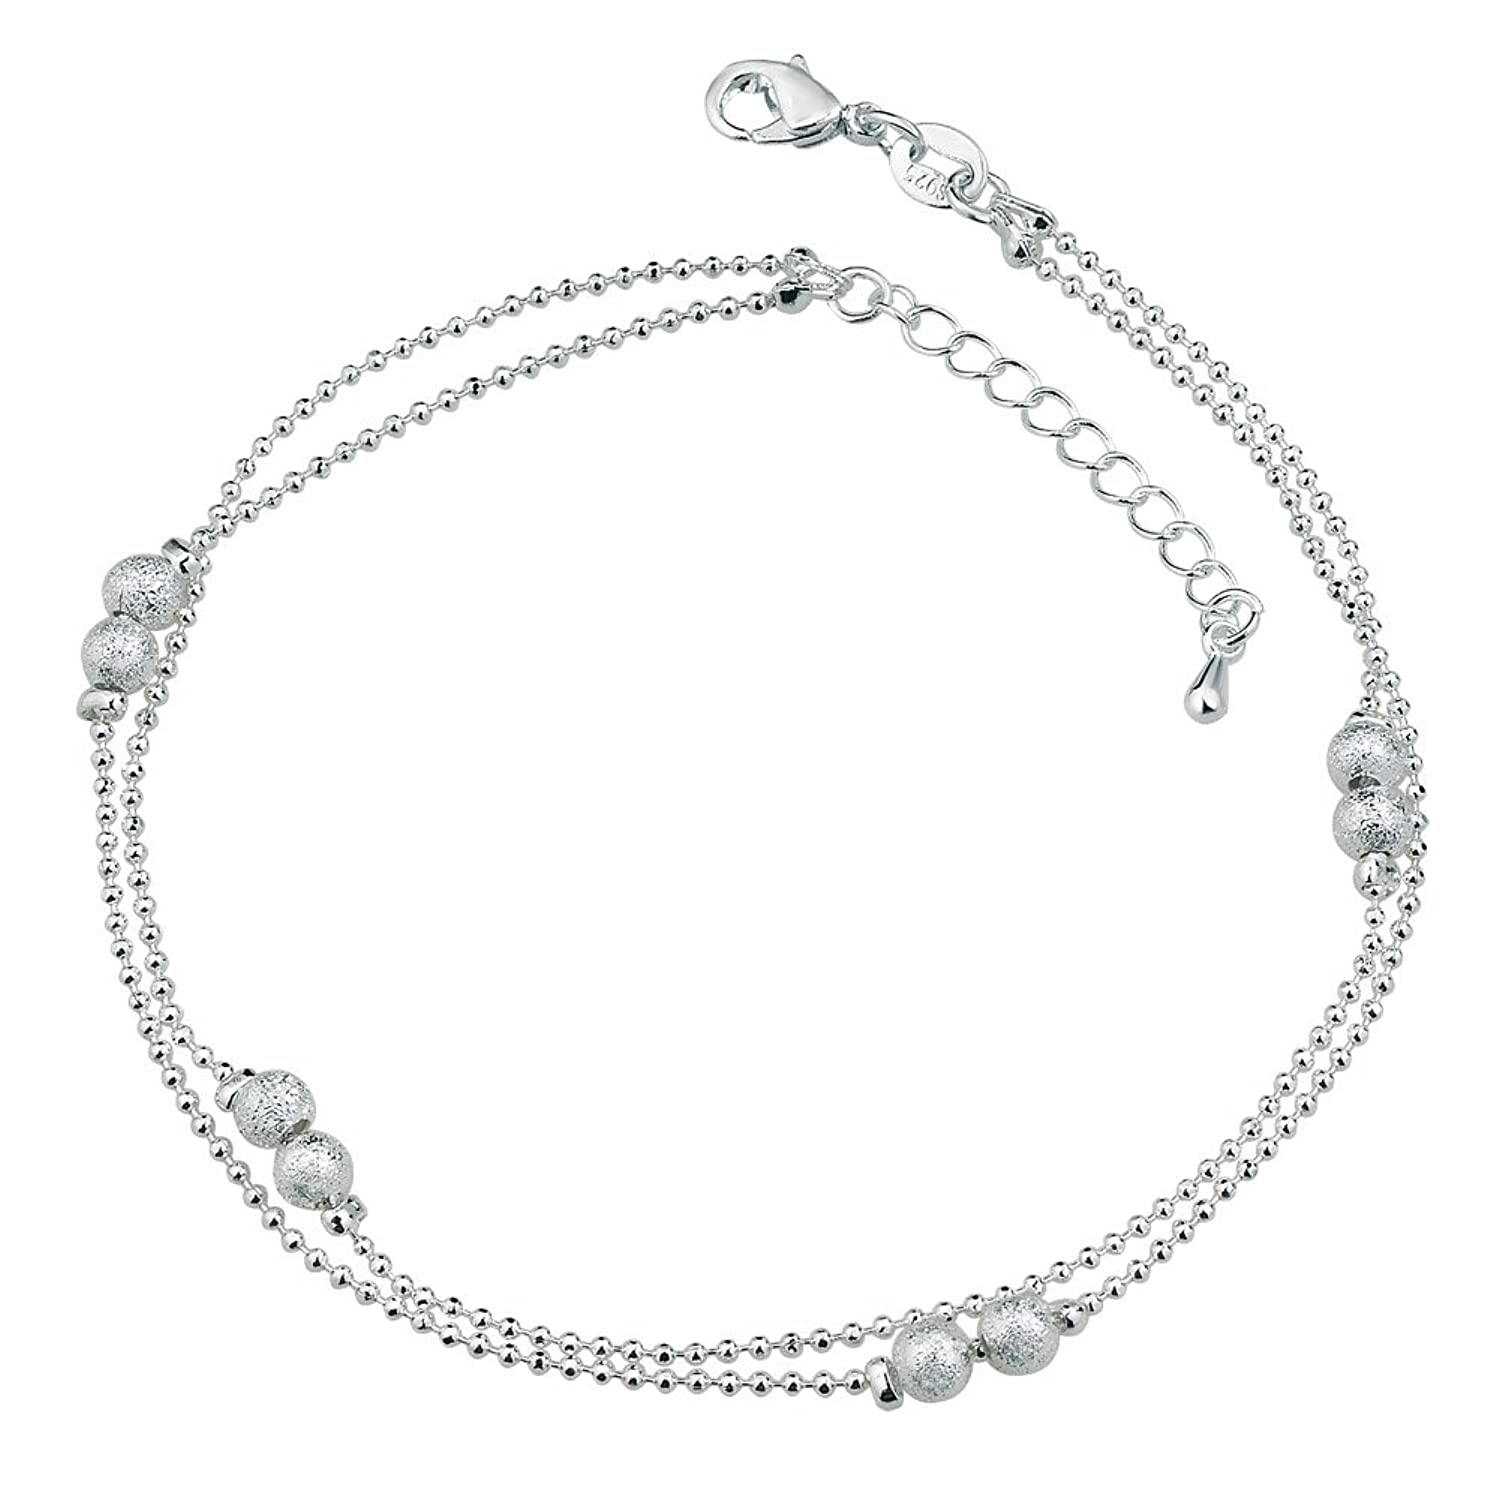 inch bracelet anklet silver amazon ankle jewelry dp sterling com chain singapore bling italy